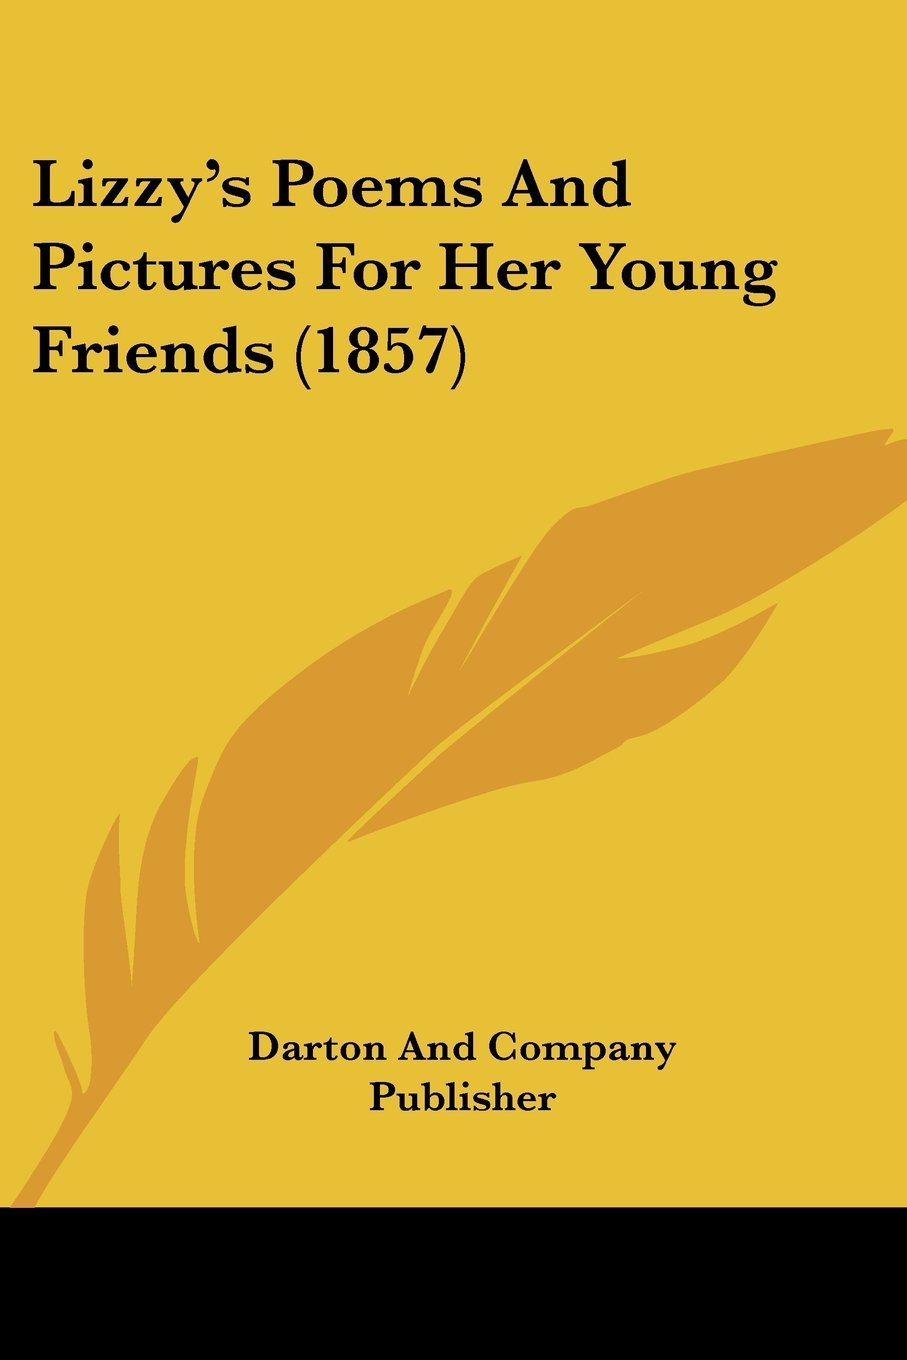 Download Lizzy's Poems And Pictures For Her Young Friends (1857) PDF